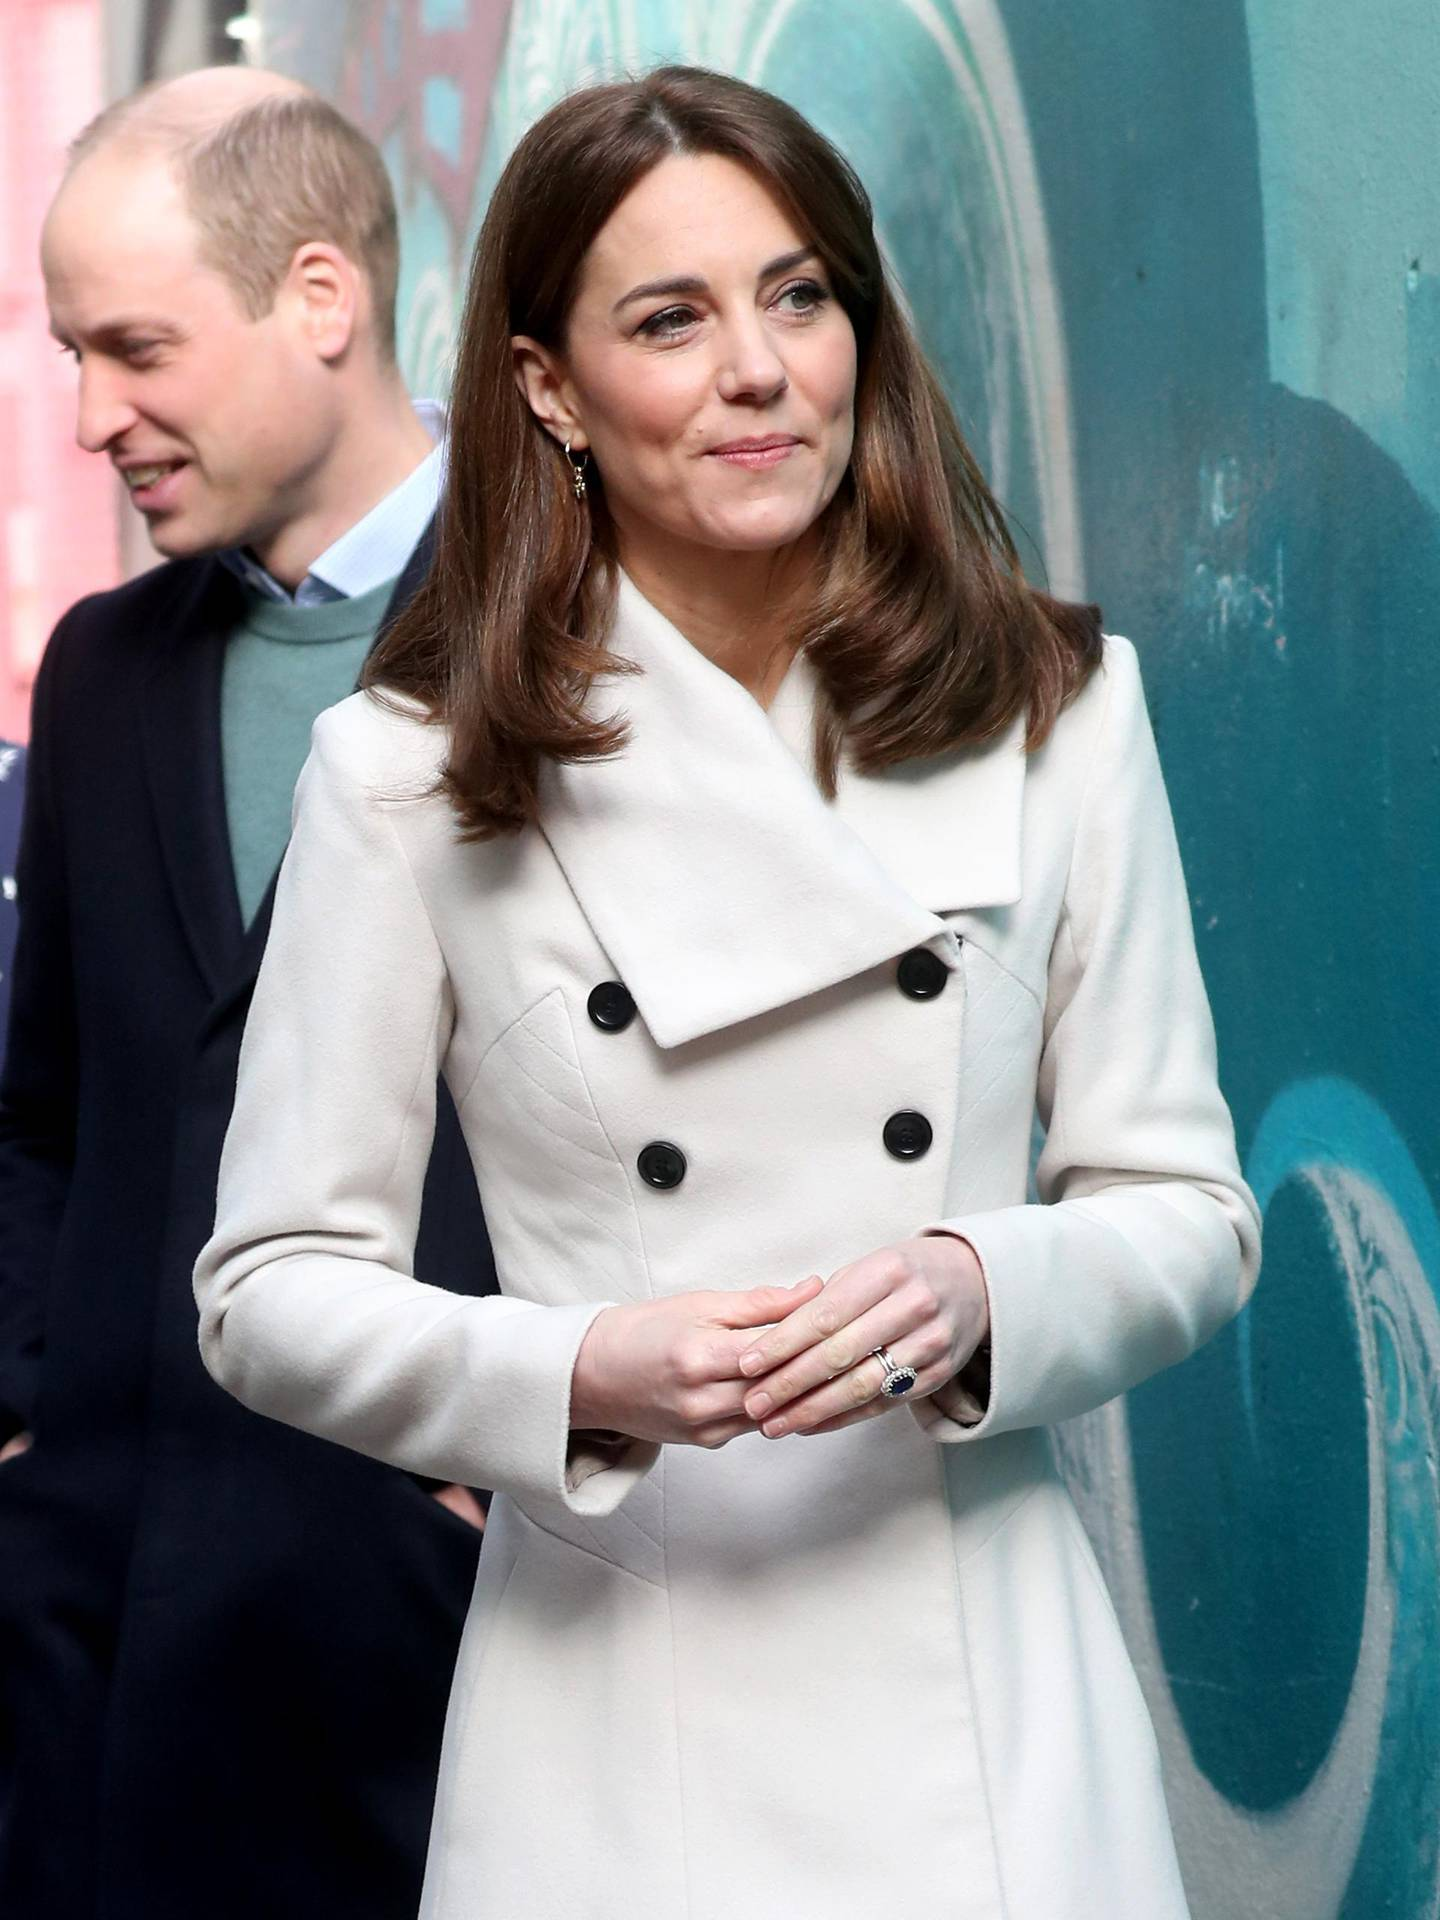 DUBLIN, IRELAND - MARCH 04: Catherine, Duchess of Cambridge views artwork as she and Prince William, Duke of Cambridge visit Jigsaw, the National Centre for Youth Mental Health, which provides vital support to young people aged 12-25 during day two of their visit to Ireland on March 04, 2020 in Dublin, Ireland. (Photo by Chris Jackson/Getty Images)